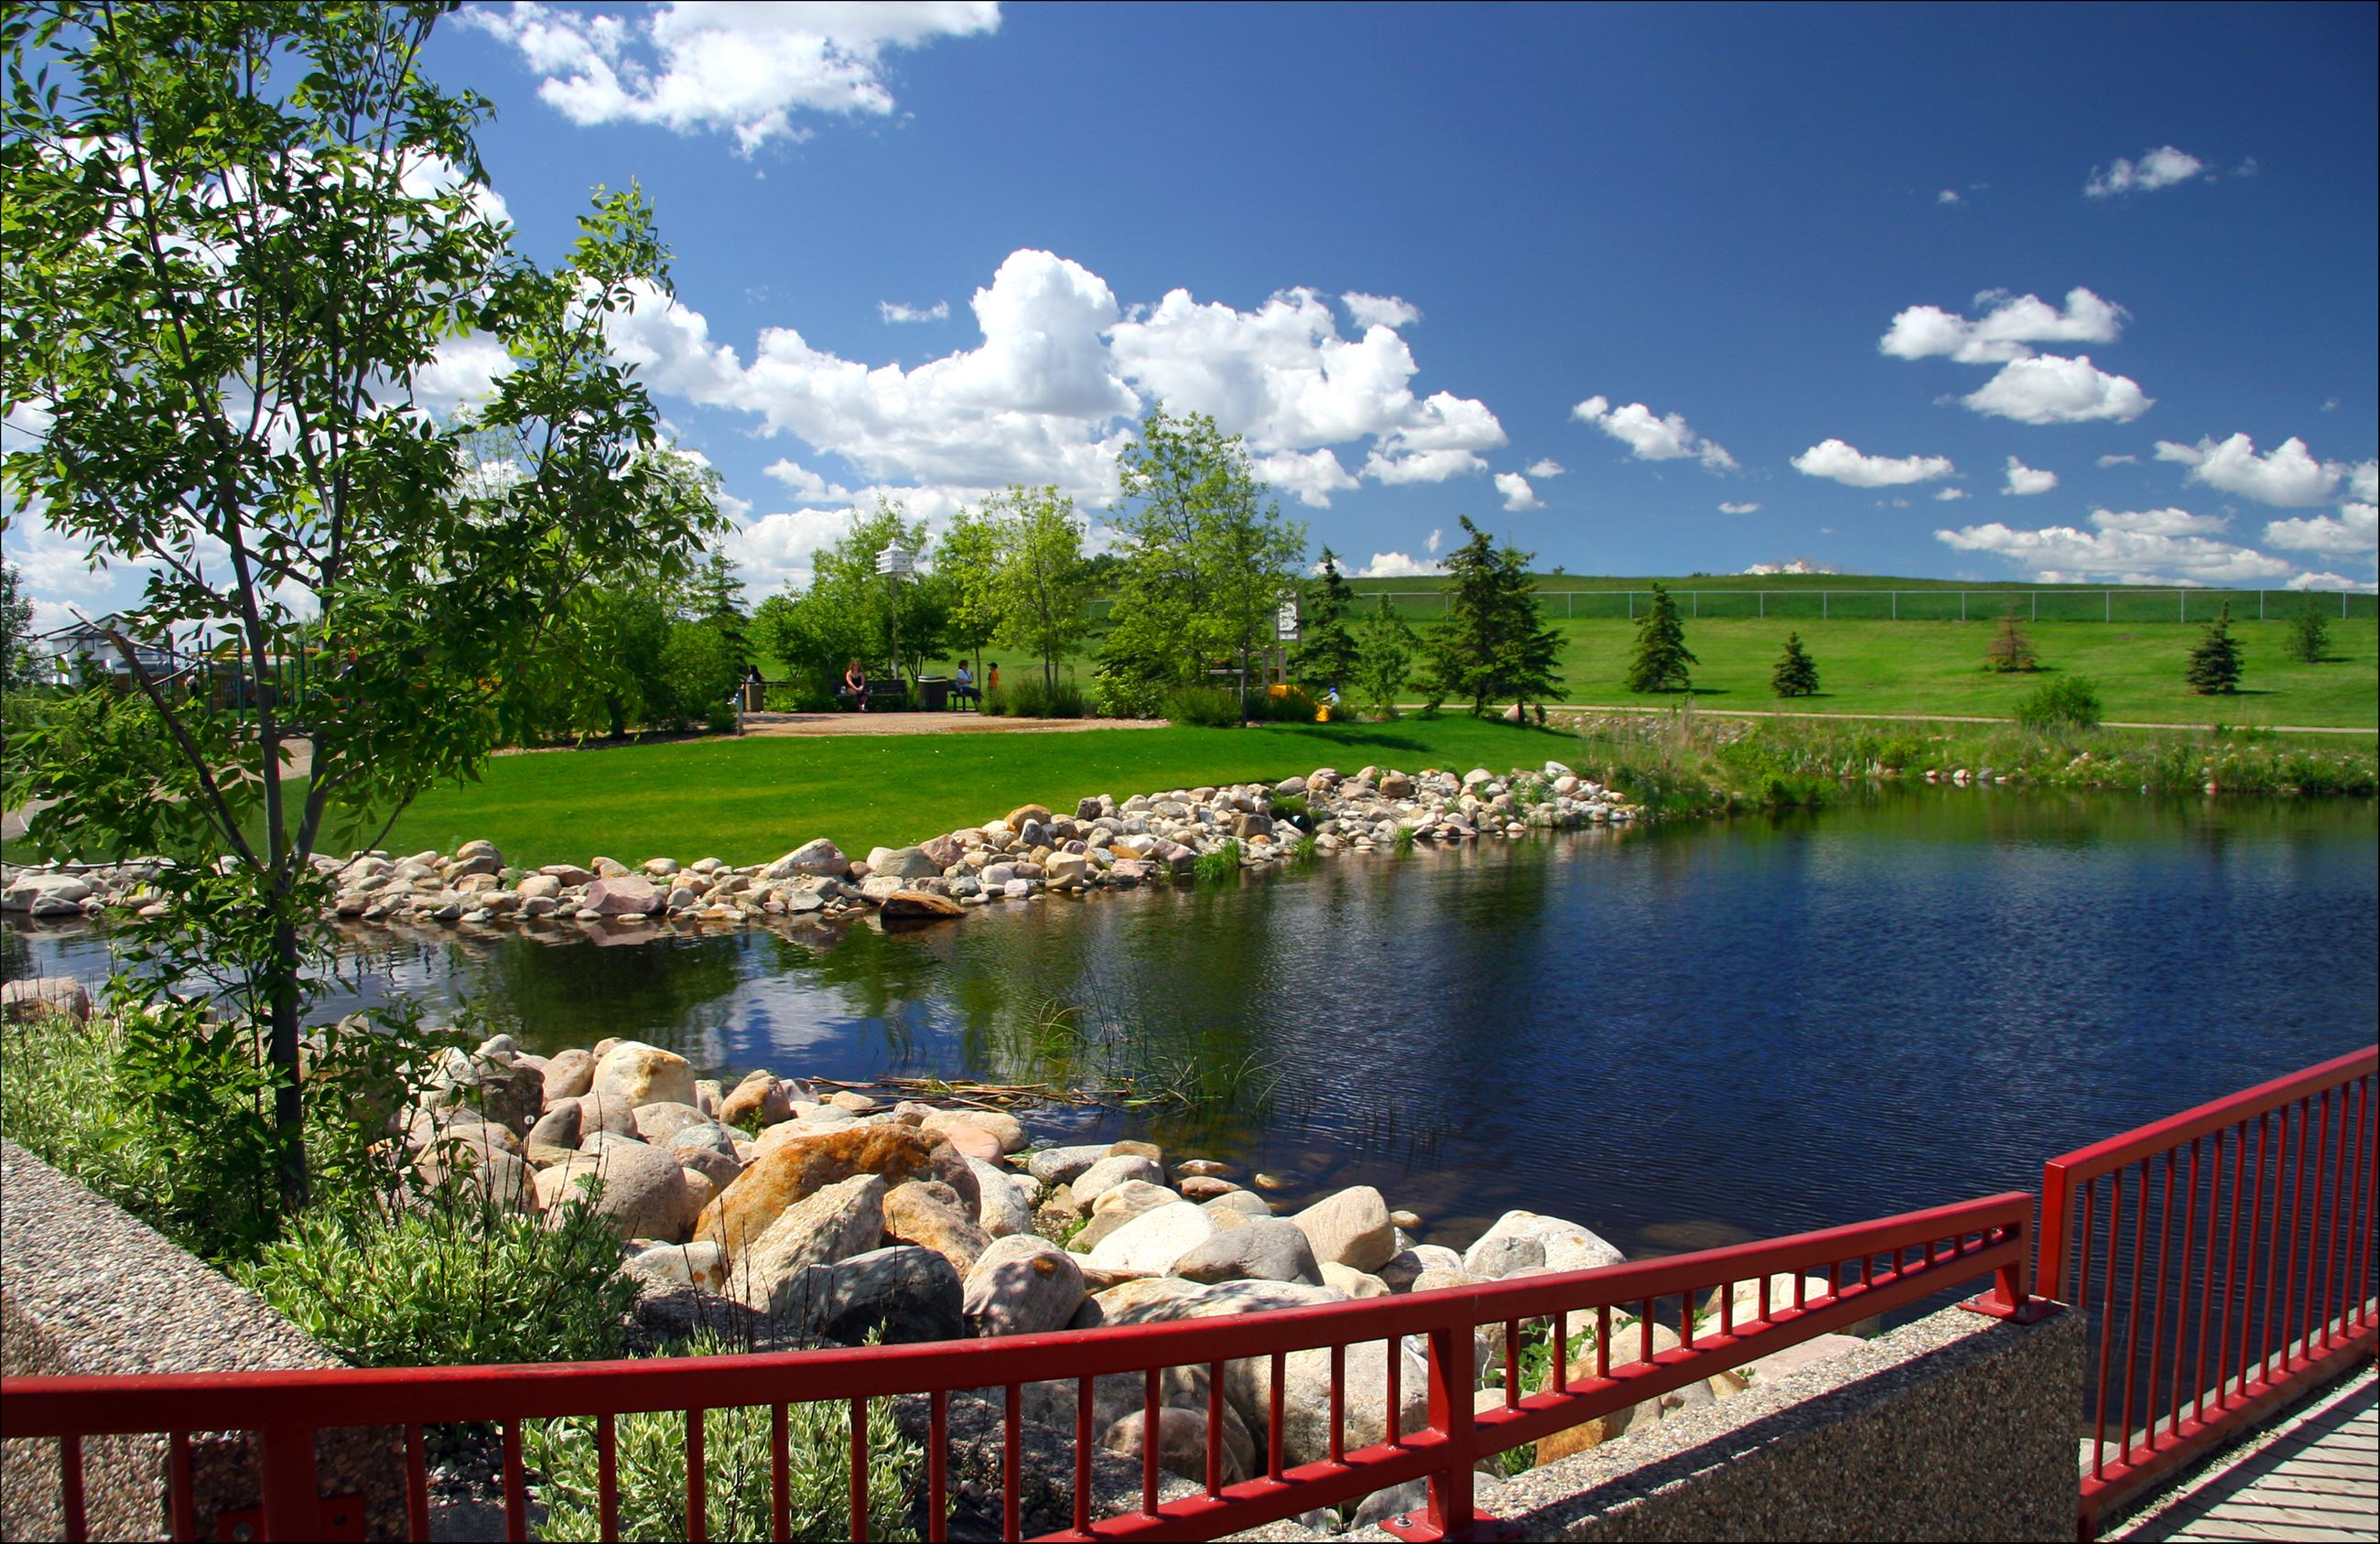 Ashoro Friendship Park in Wetaskiwin